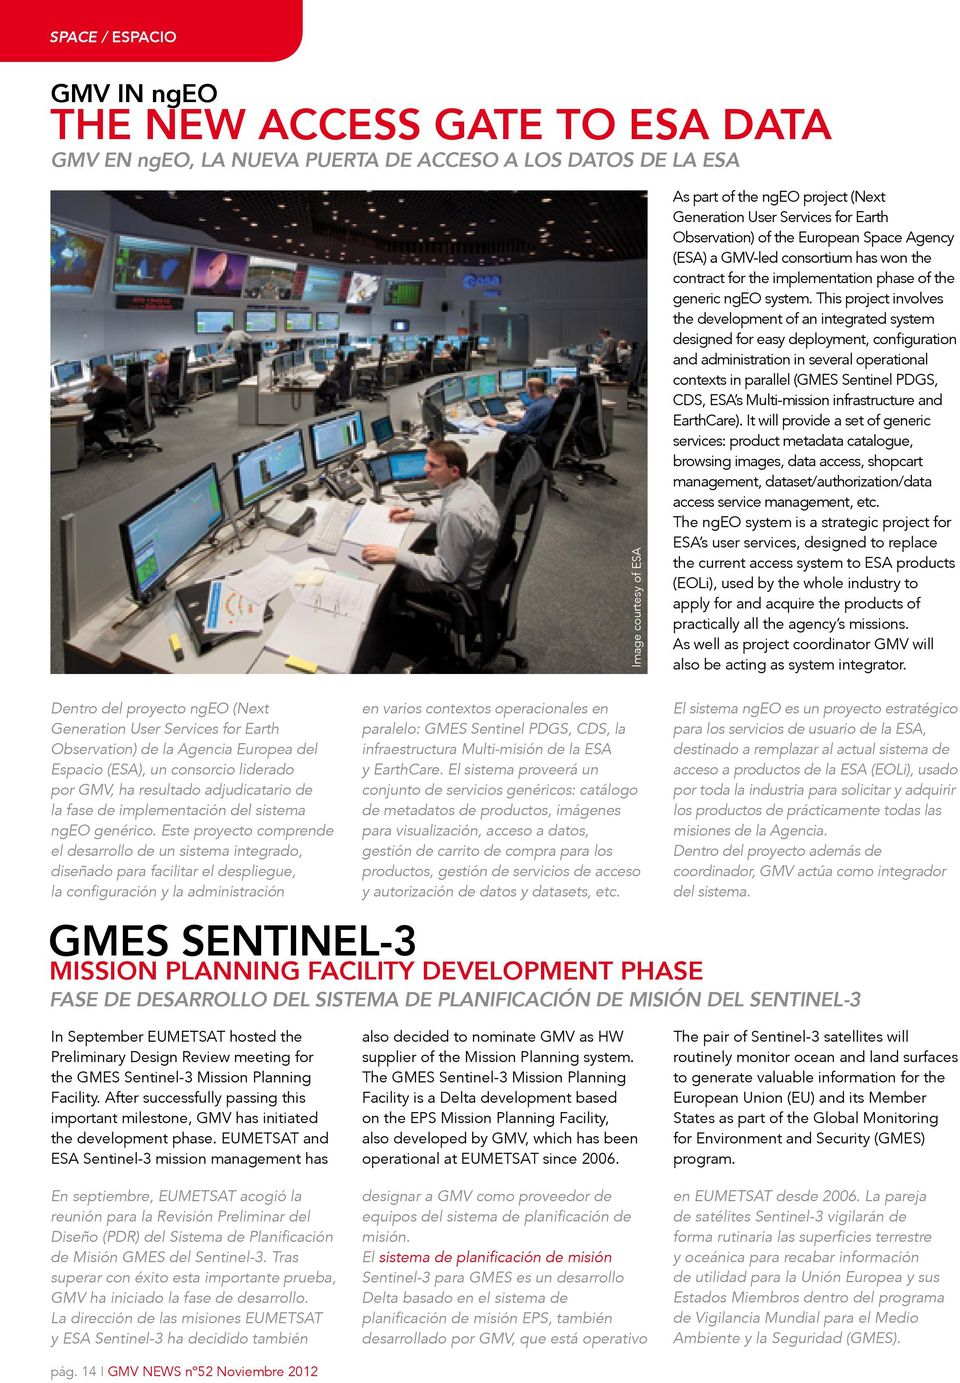 This project involves the development of an integrated system designed for easy deployment, configuration and administration in several operational contexts in parallel (GMES Sentinel PDGS, CDS, ESA